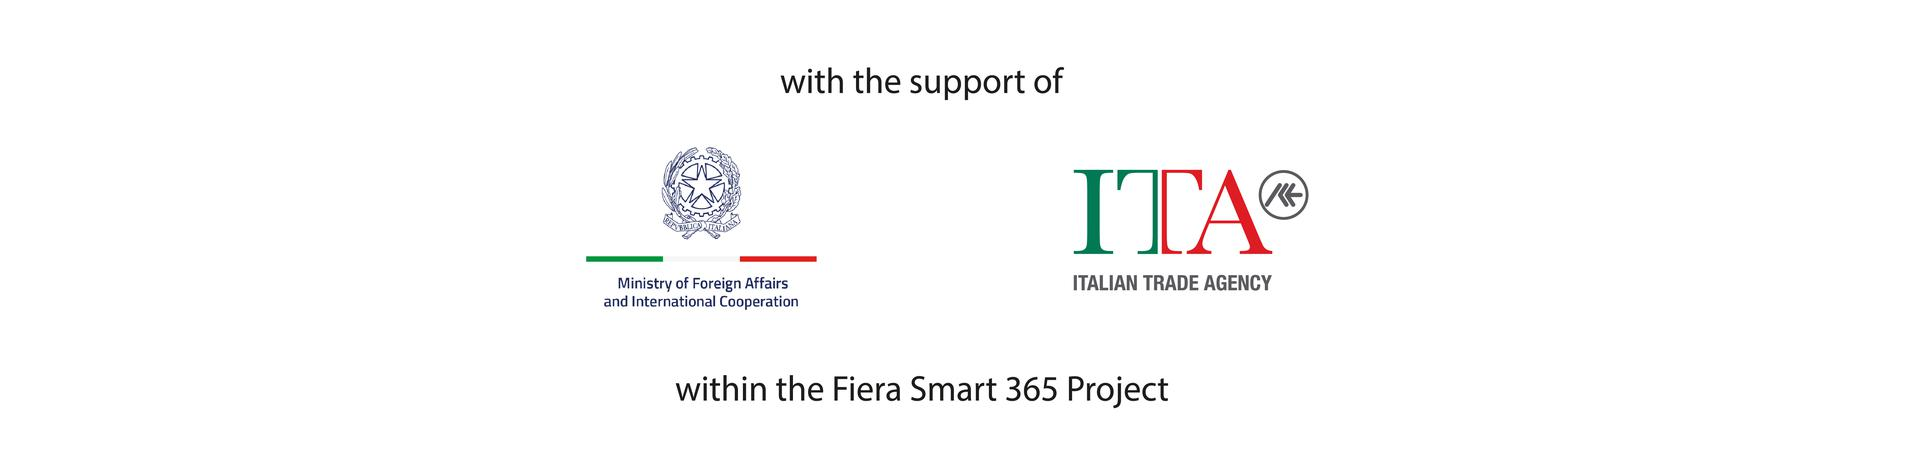 with the support of MAECI and ITA within the Fiera Smart 365 Project